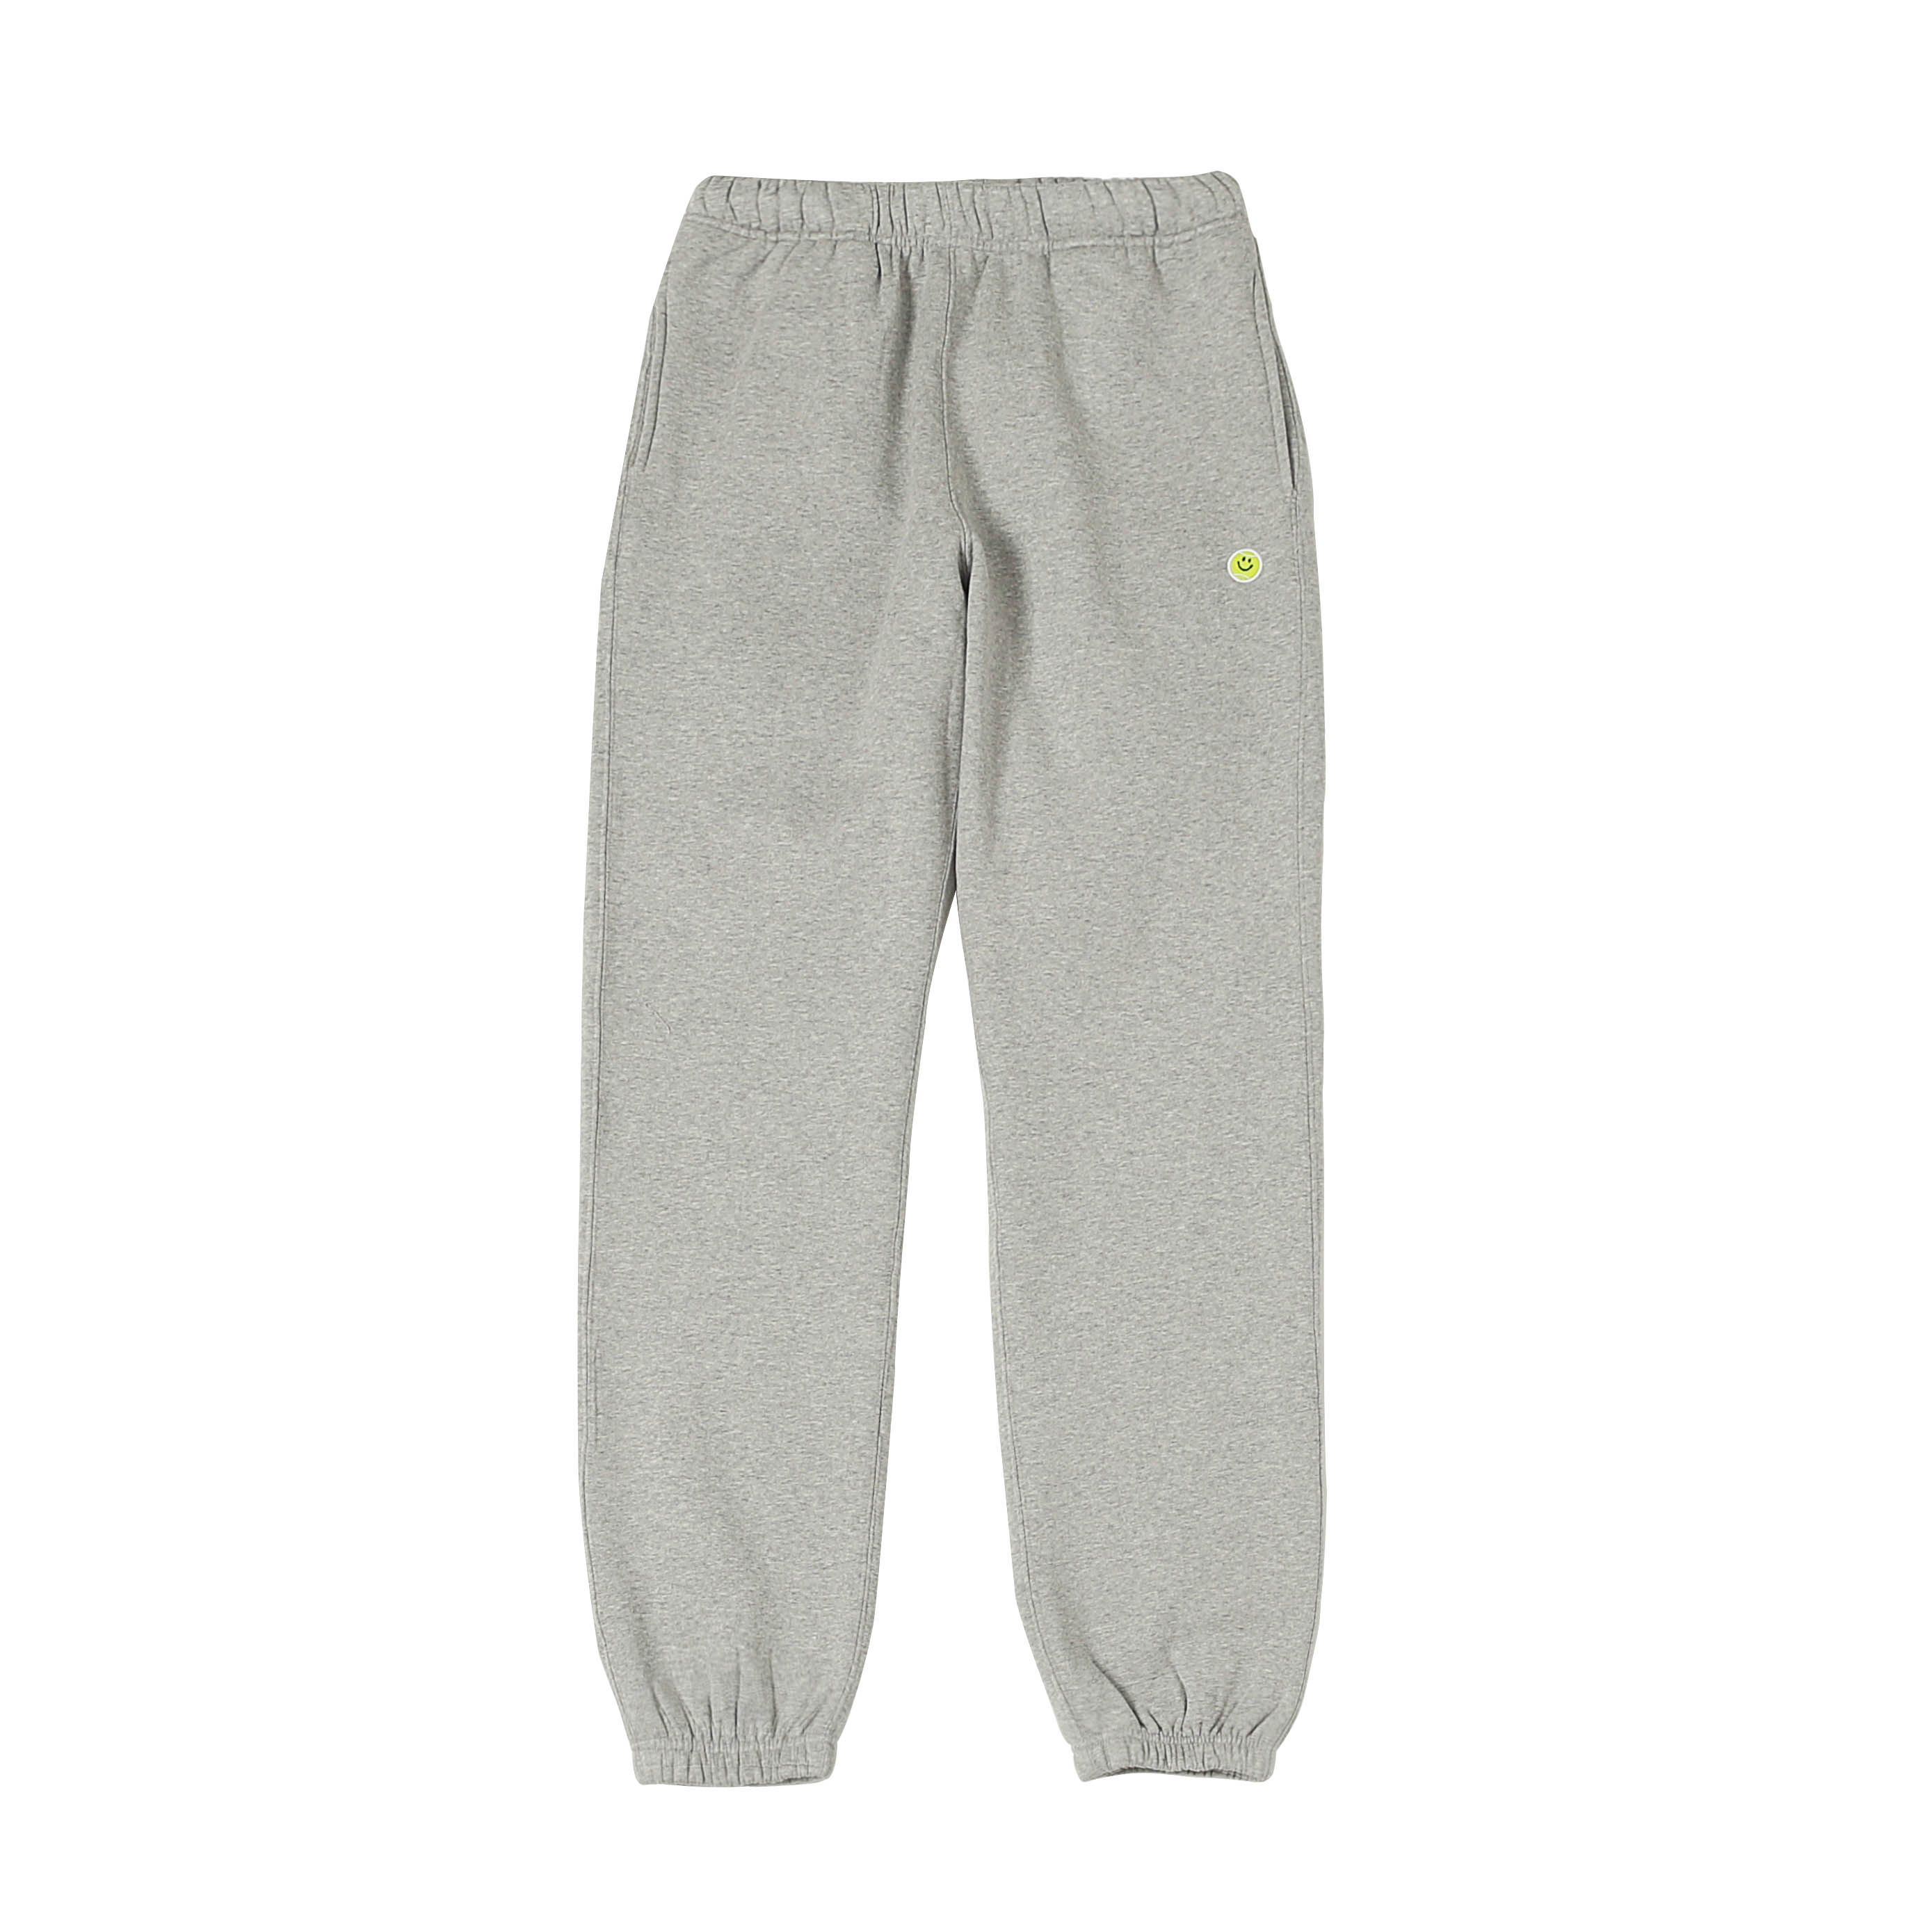 SMILE BALL SWEAT PANTS - M.GREY